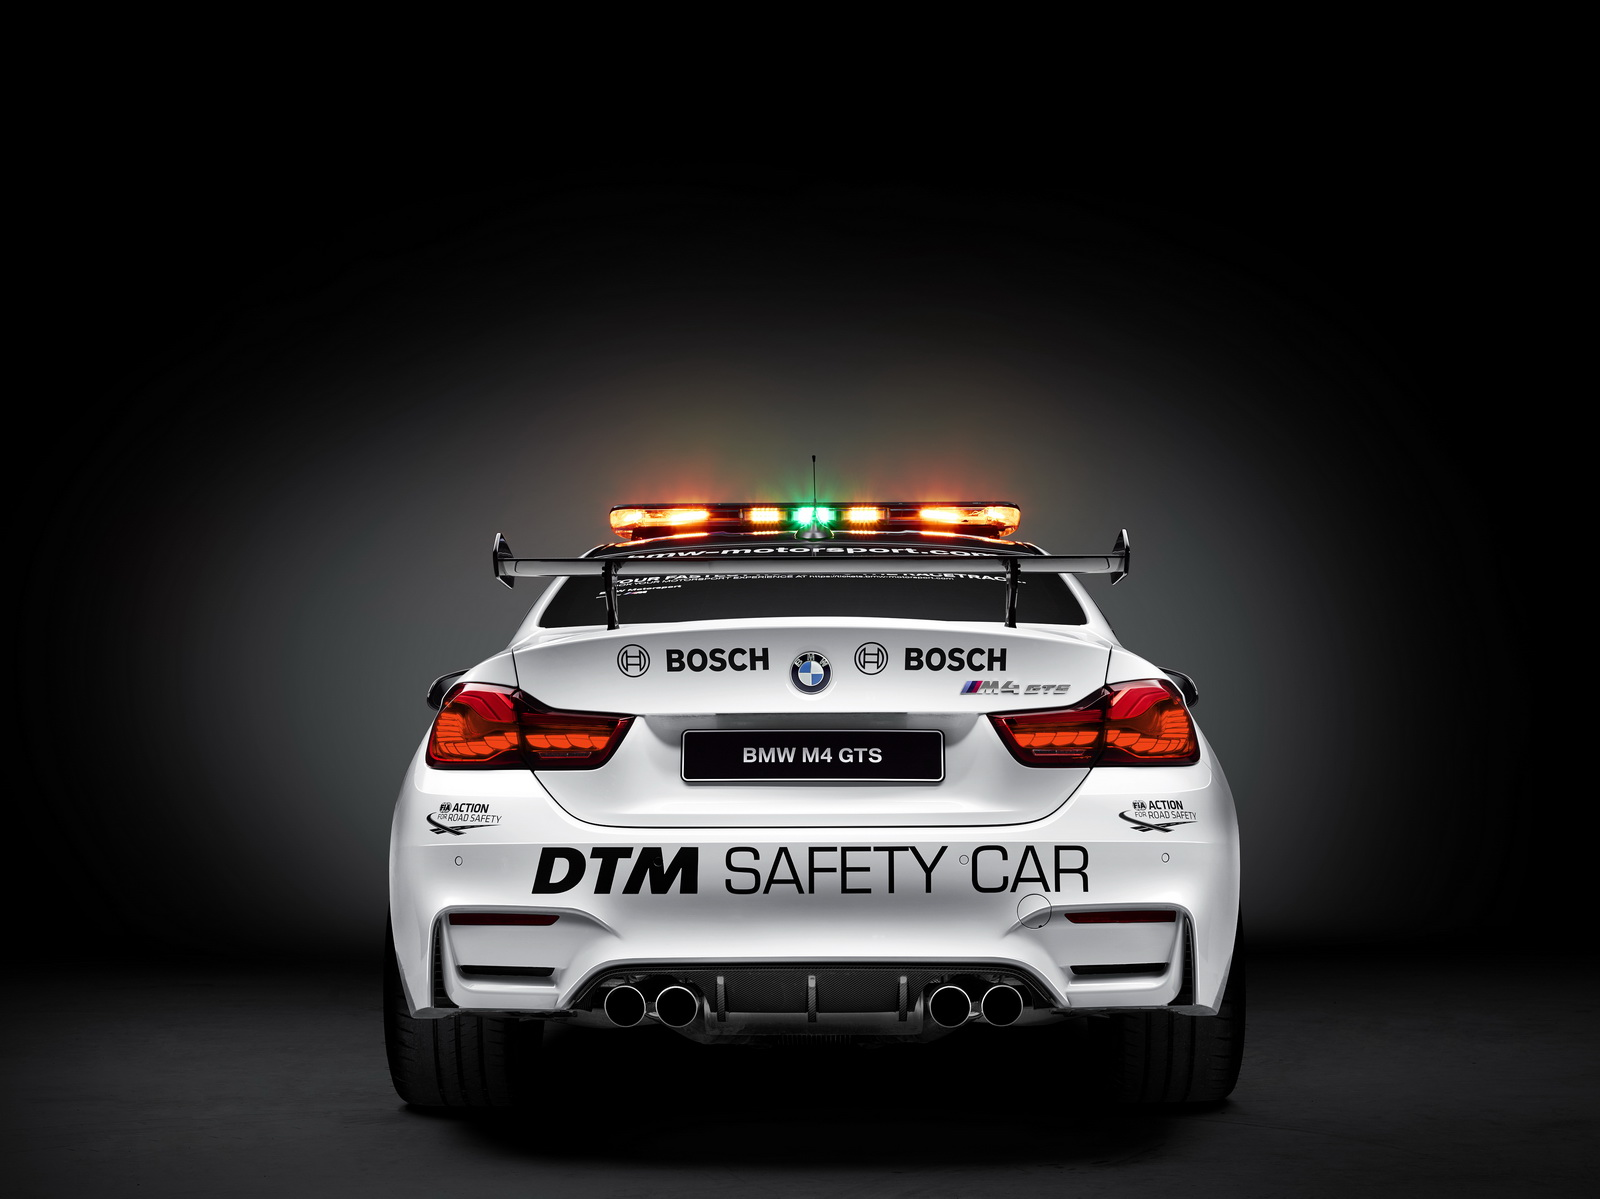 Audi European Delivery >> BMW's M4 GTS Becomes The Safety Car Of 2016 DTM | Carscoops